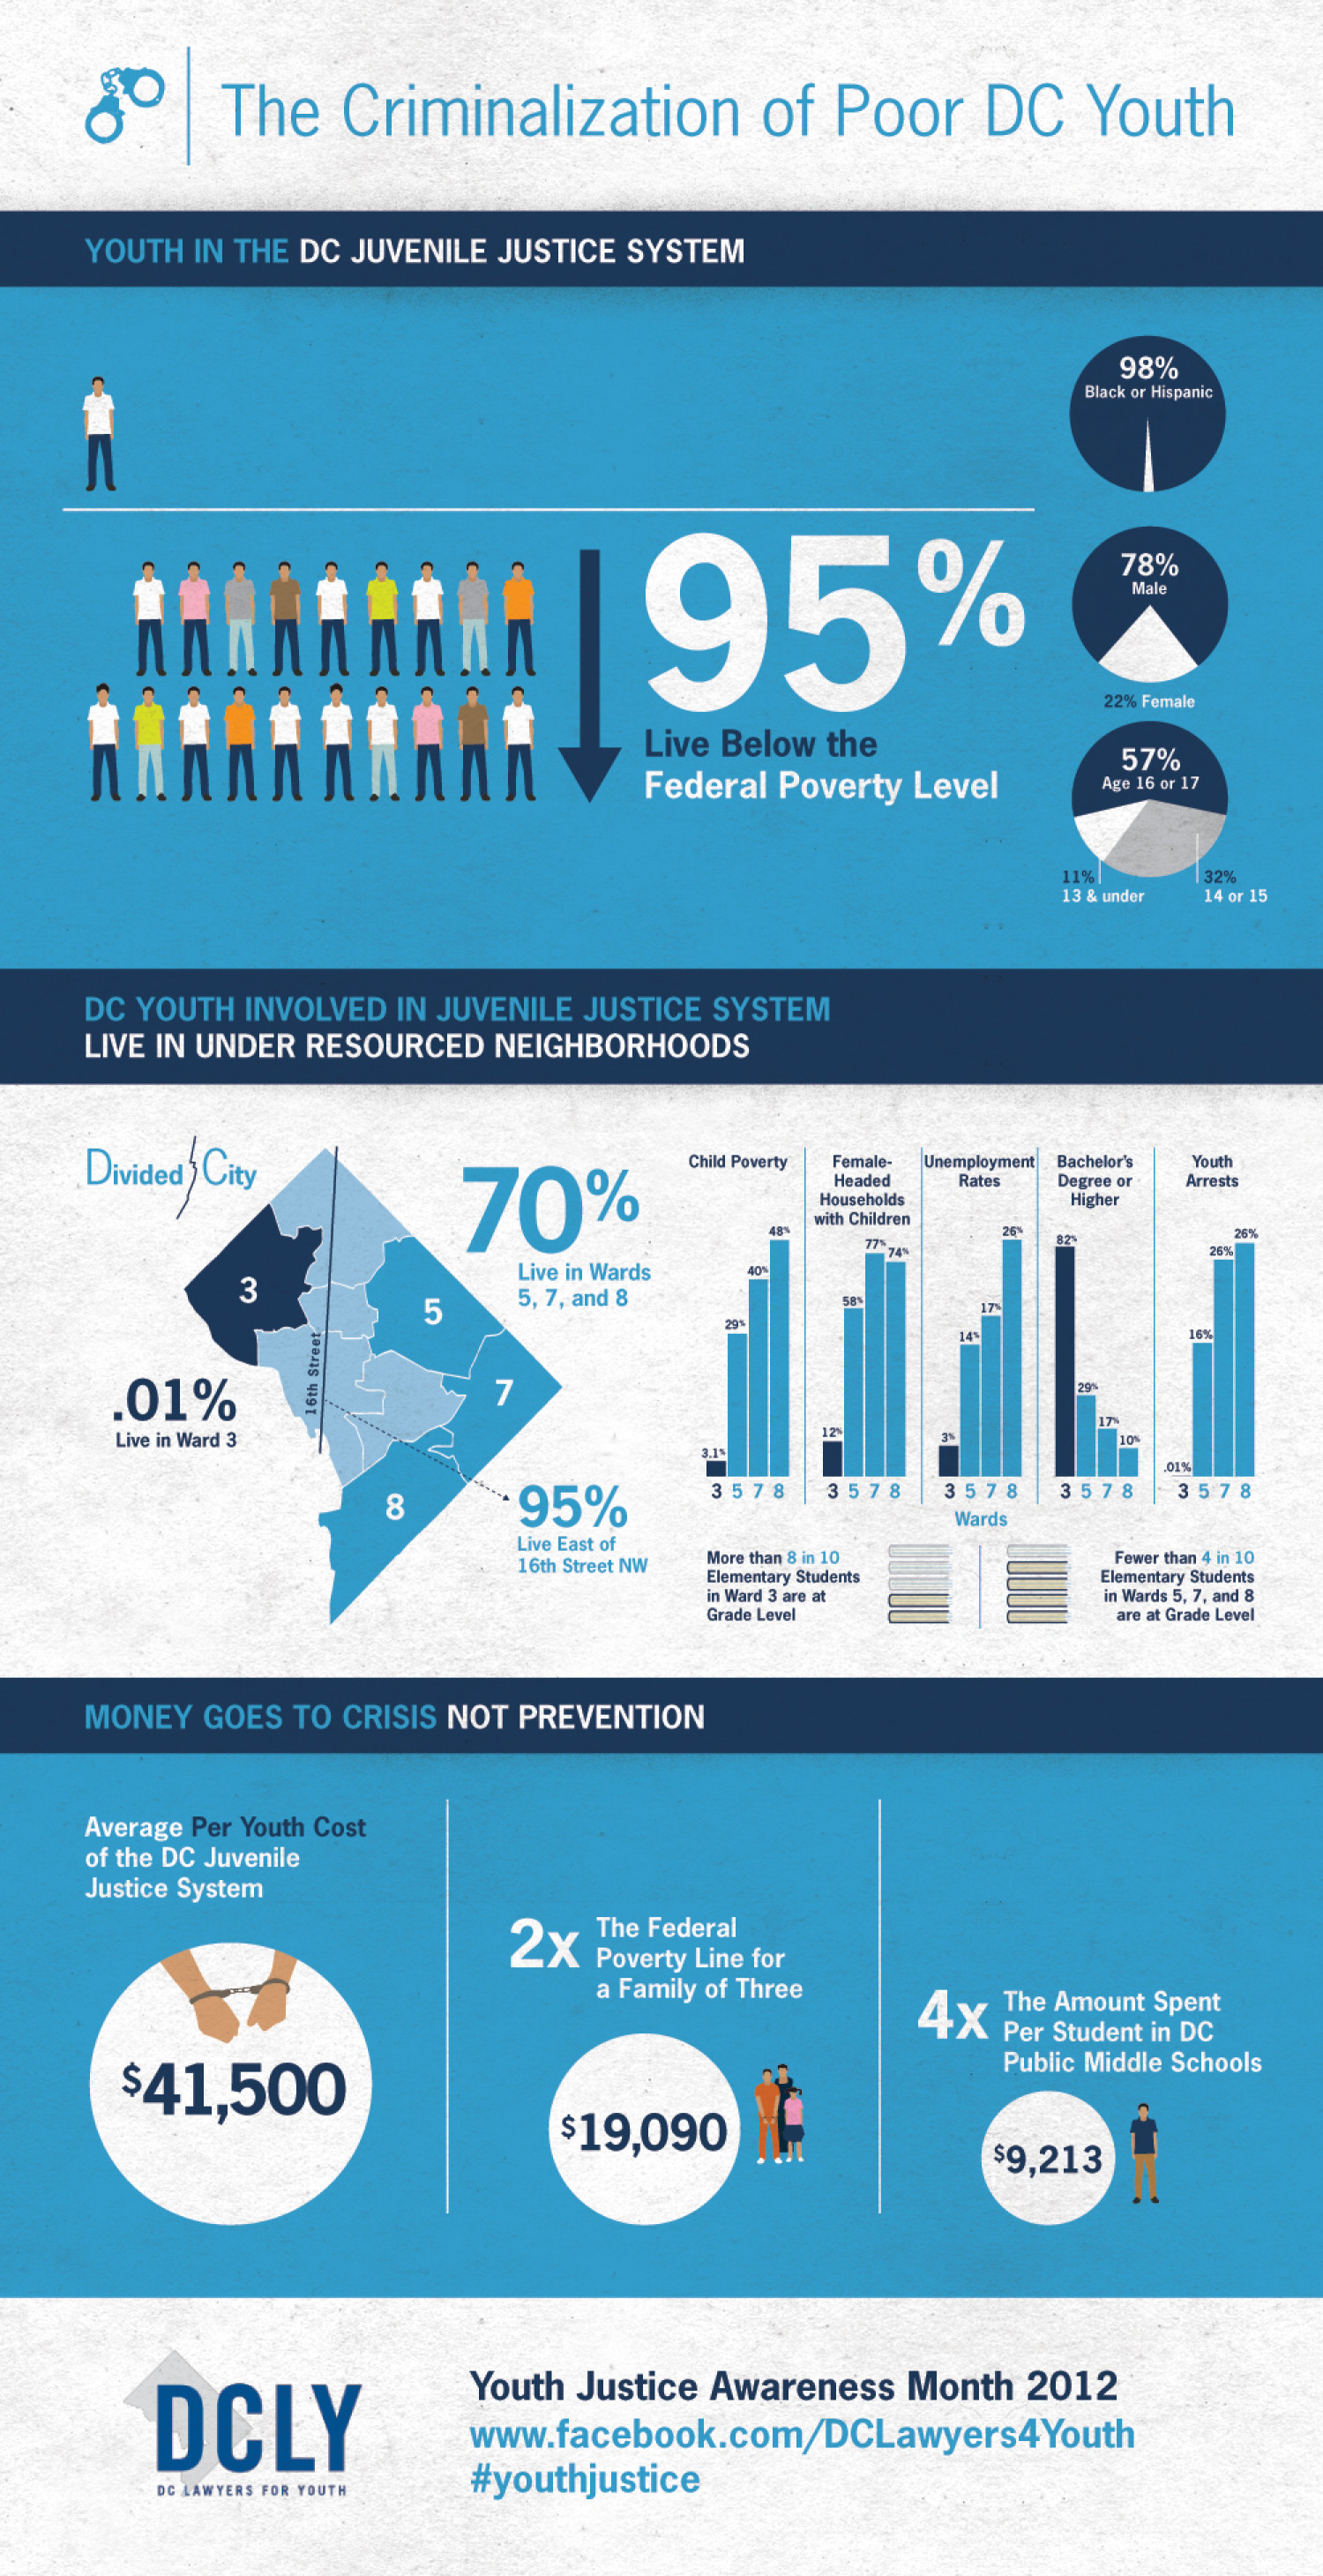 The Criminalization of Poor DC Youth Infographic